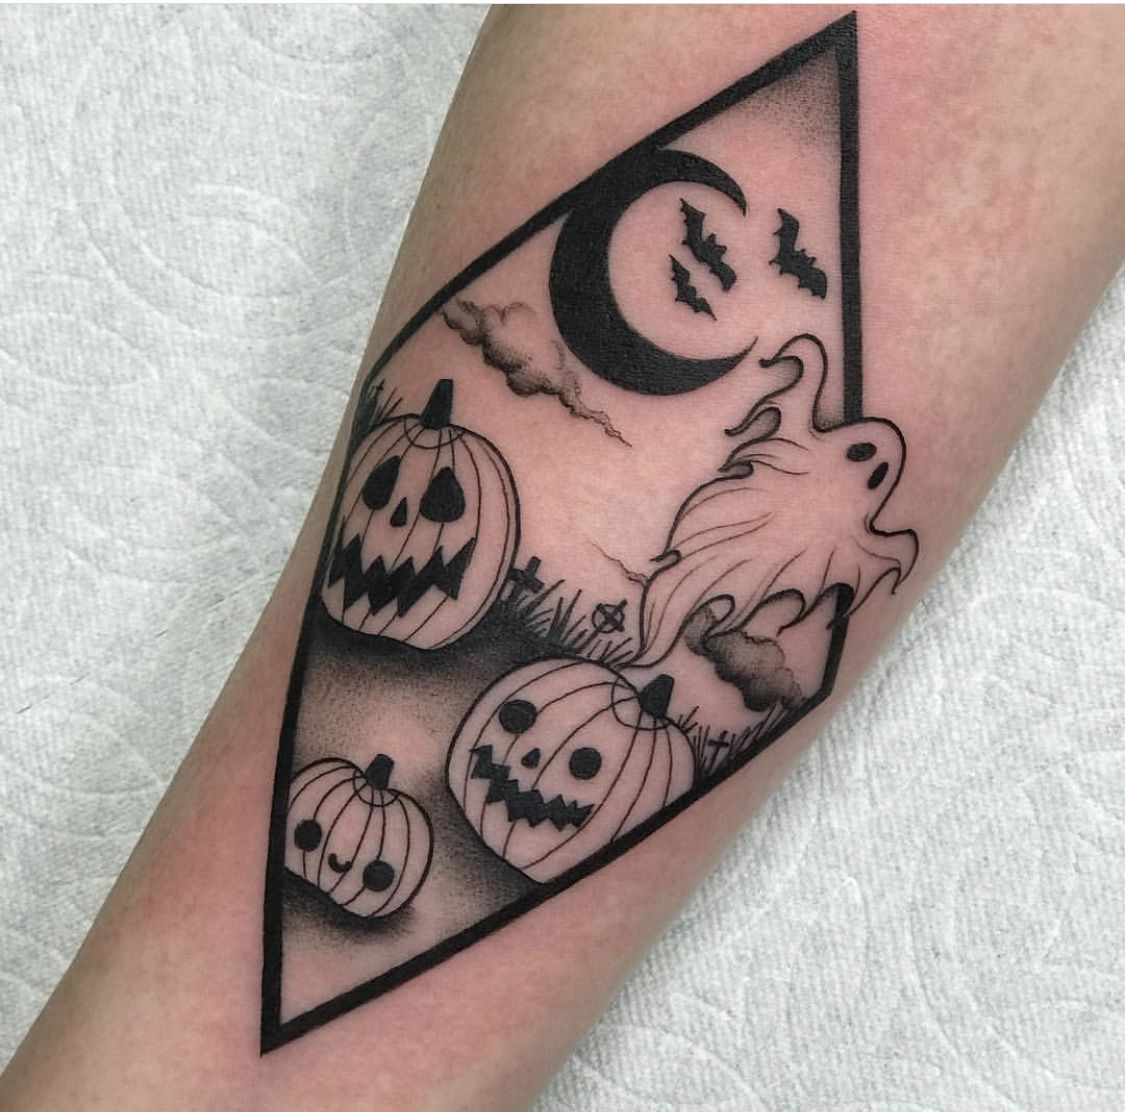 Pin by Kristen O'Shea on Tattoos Hand tattoos, Halloween